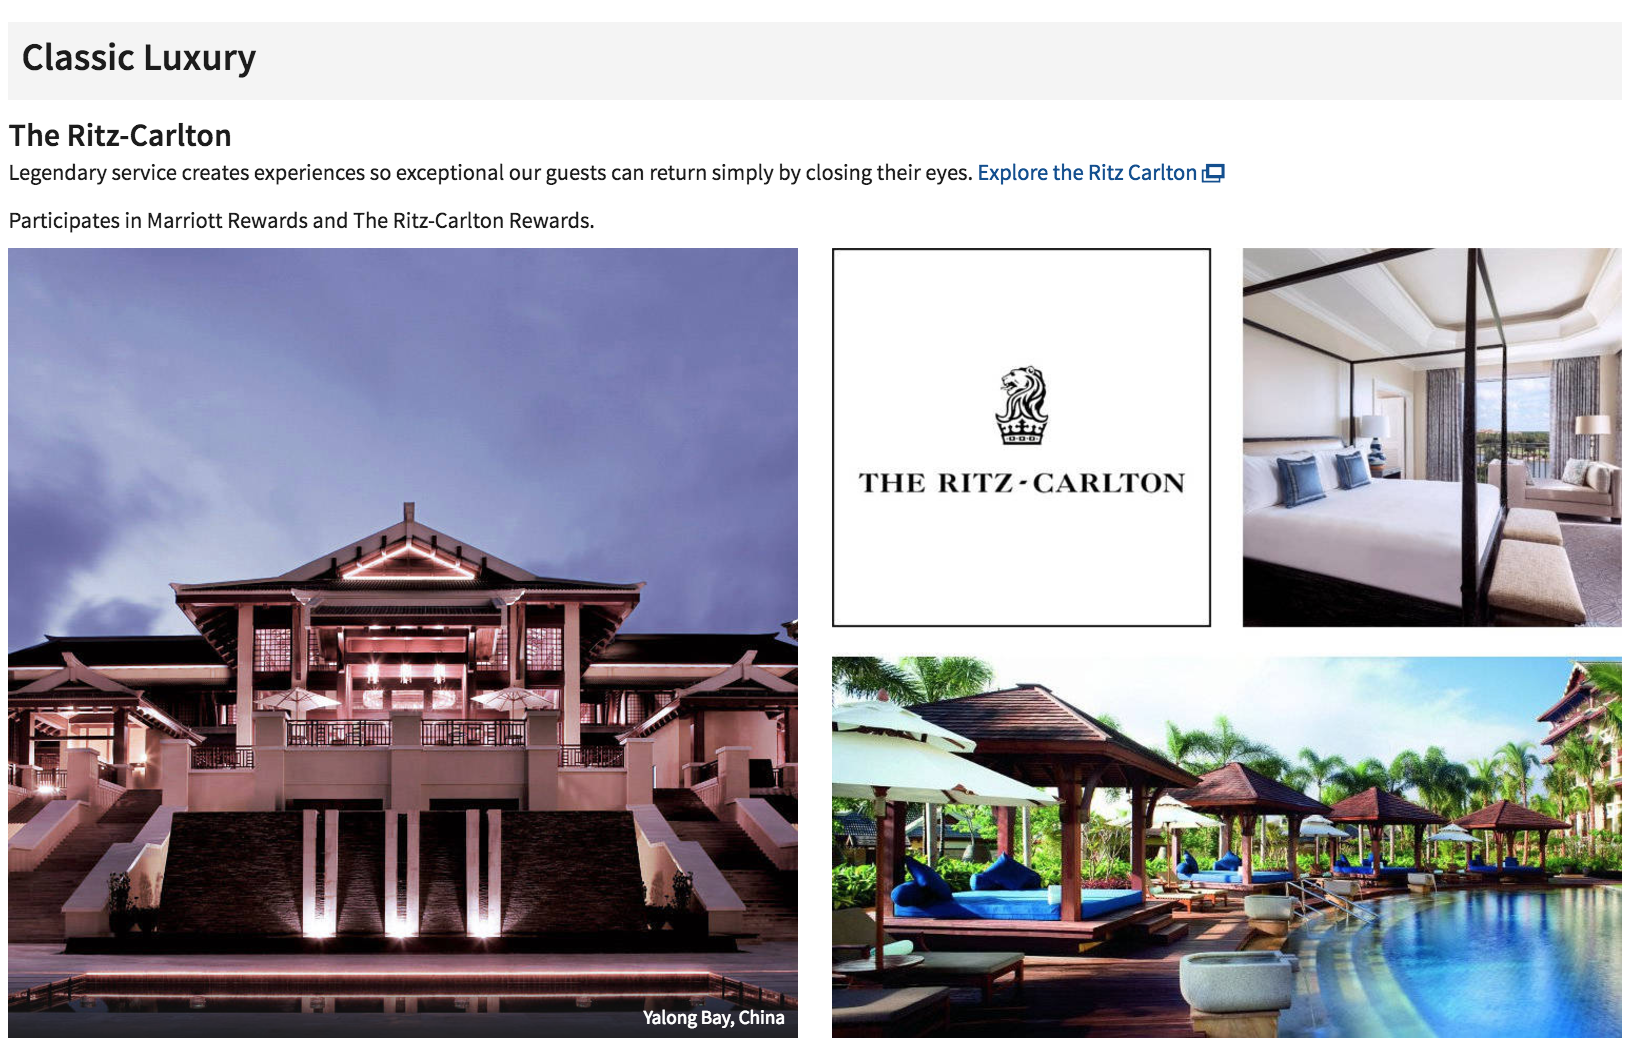 Marriott now boasts eight luxury brands since it acquired Starwood - the Ritz Carlton is one of its old stalwarts.